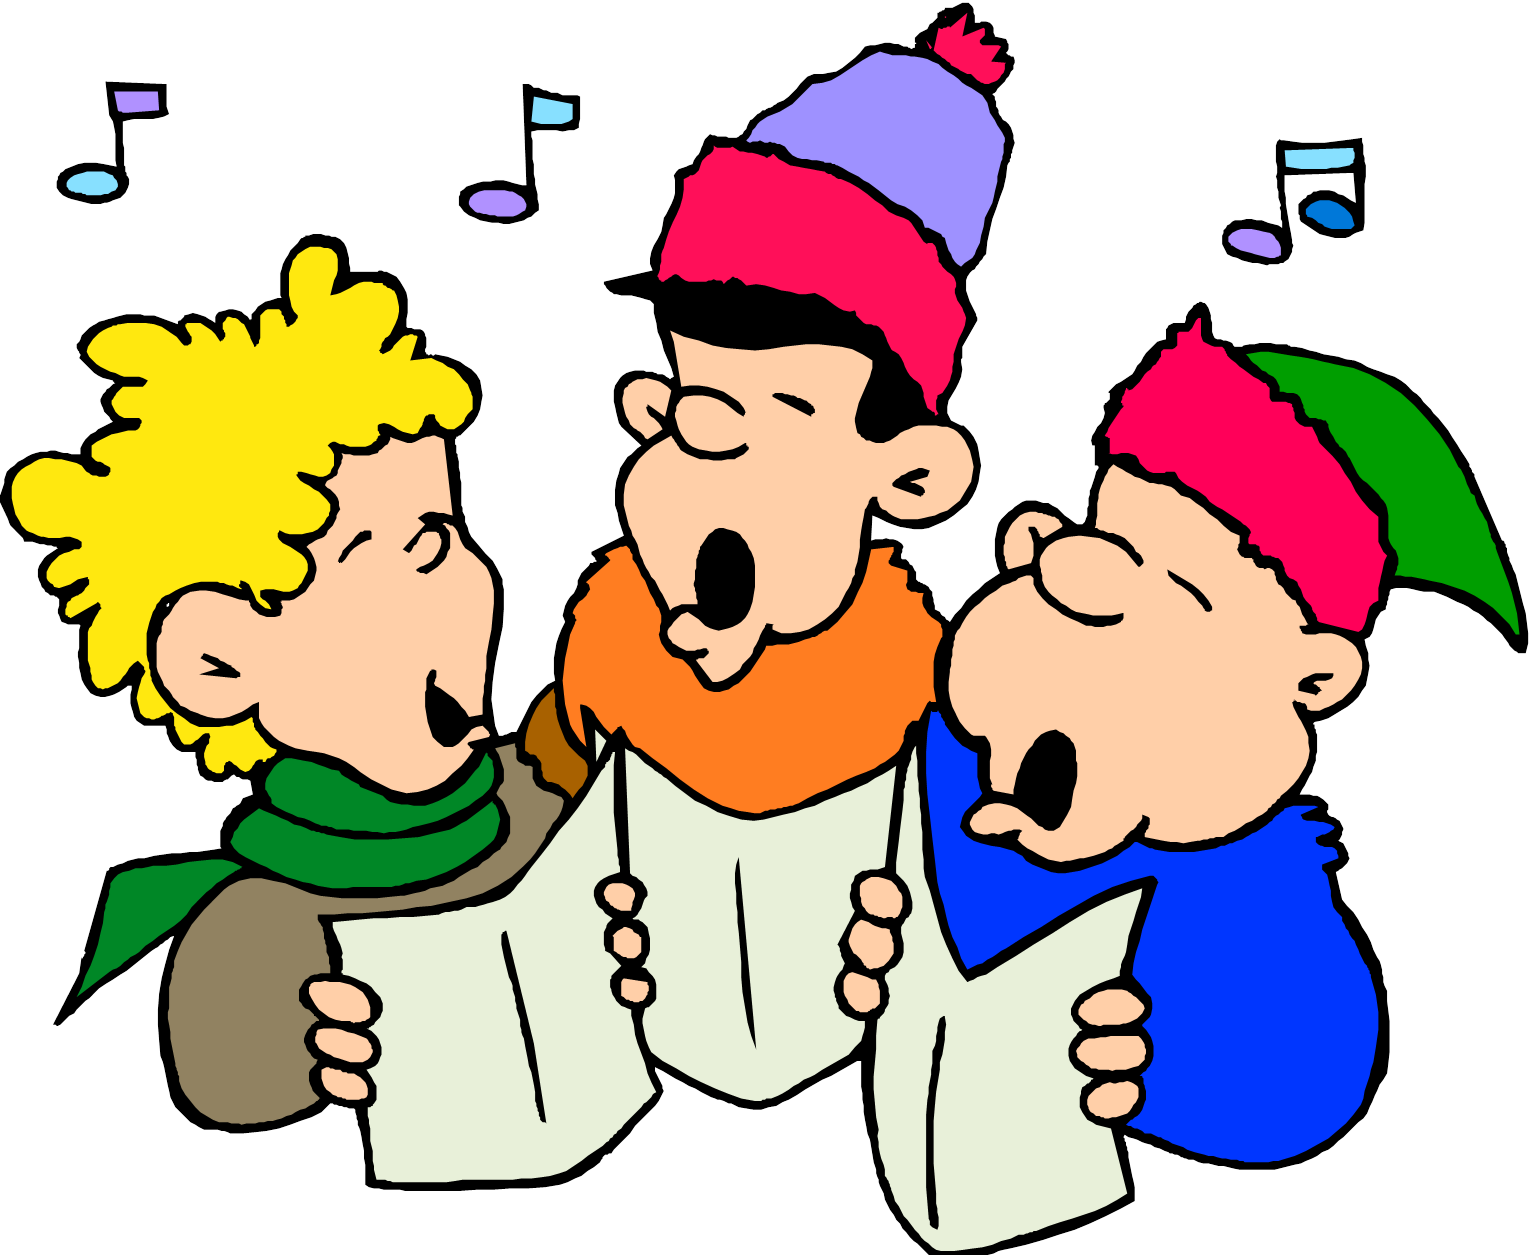 png royalty free library News announcements at the. Caroling clipart preschool.